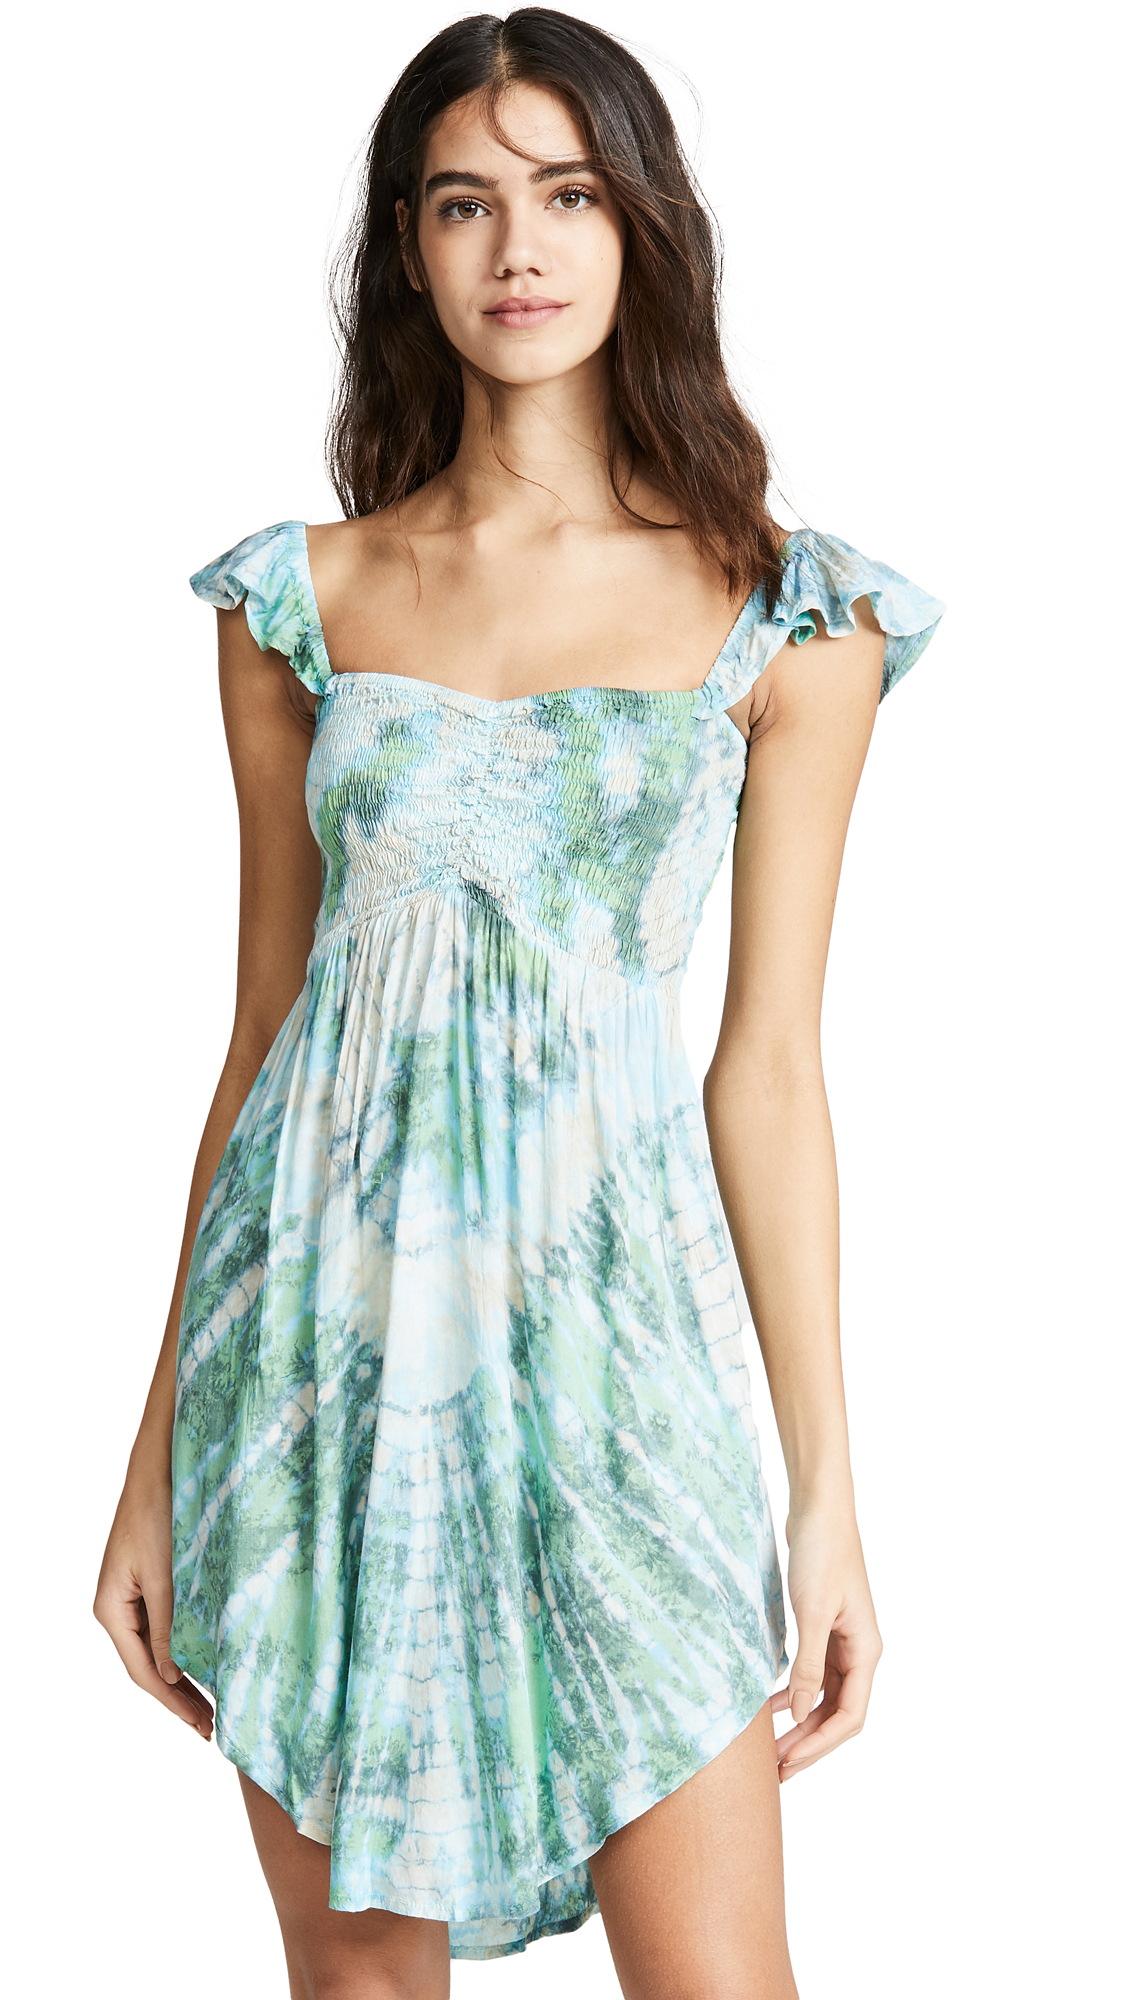 TIARE HAWAII Hollie Short Dress in Aqua/Green/Grey Vibe